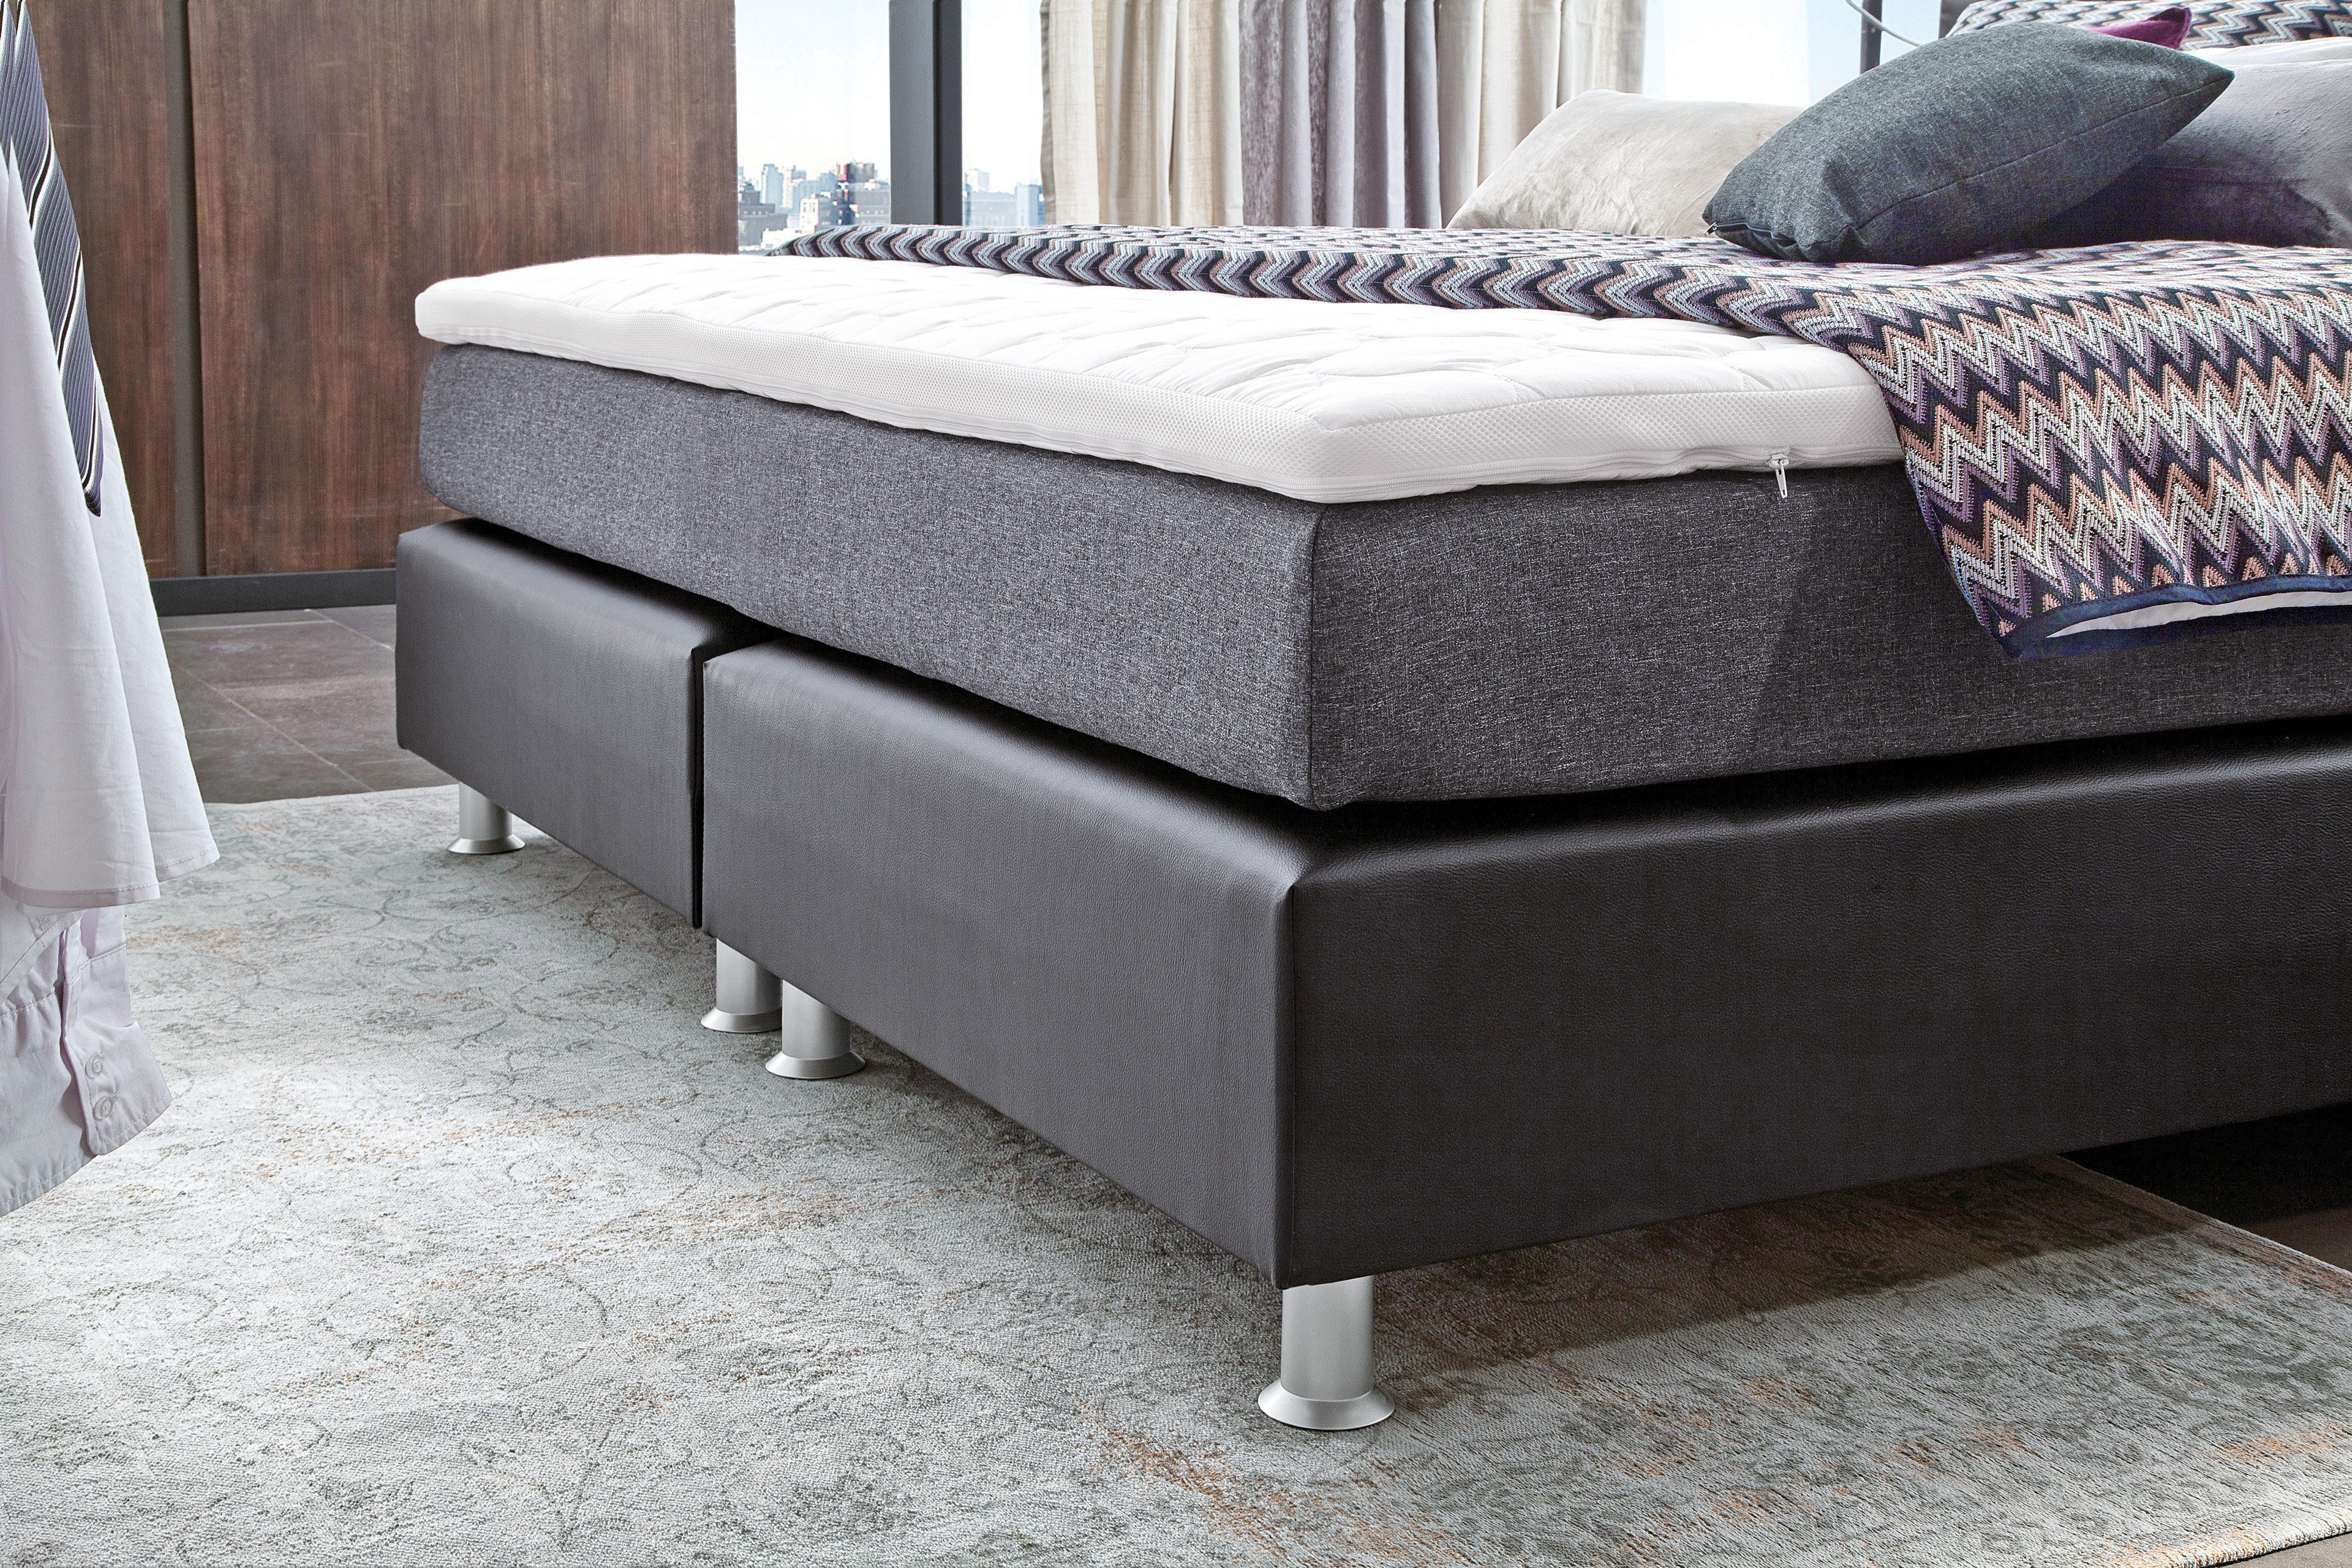 oschmann belcanto luxus boxspringbett in kunstleder schwarz m bel letz ihr online shop. Black Bedroom Furniture Sets. Home Design Ideas